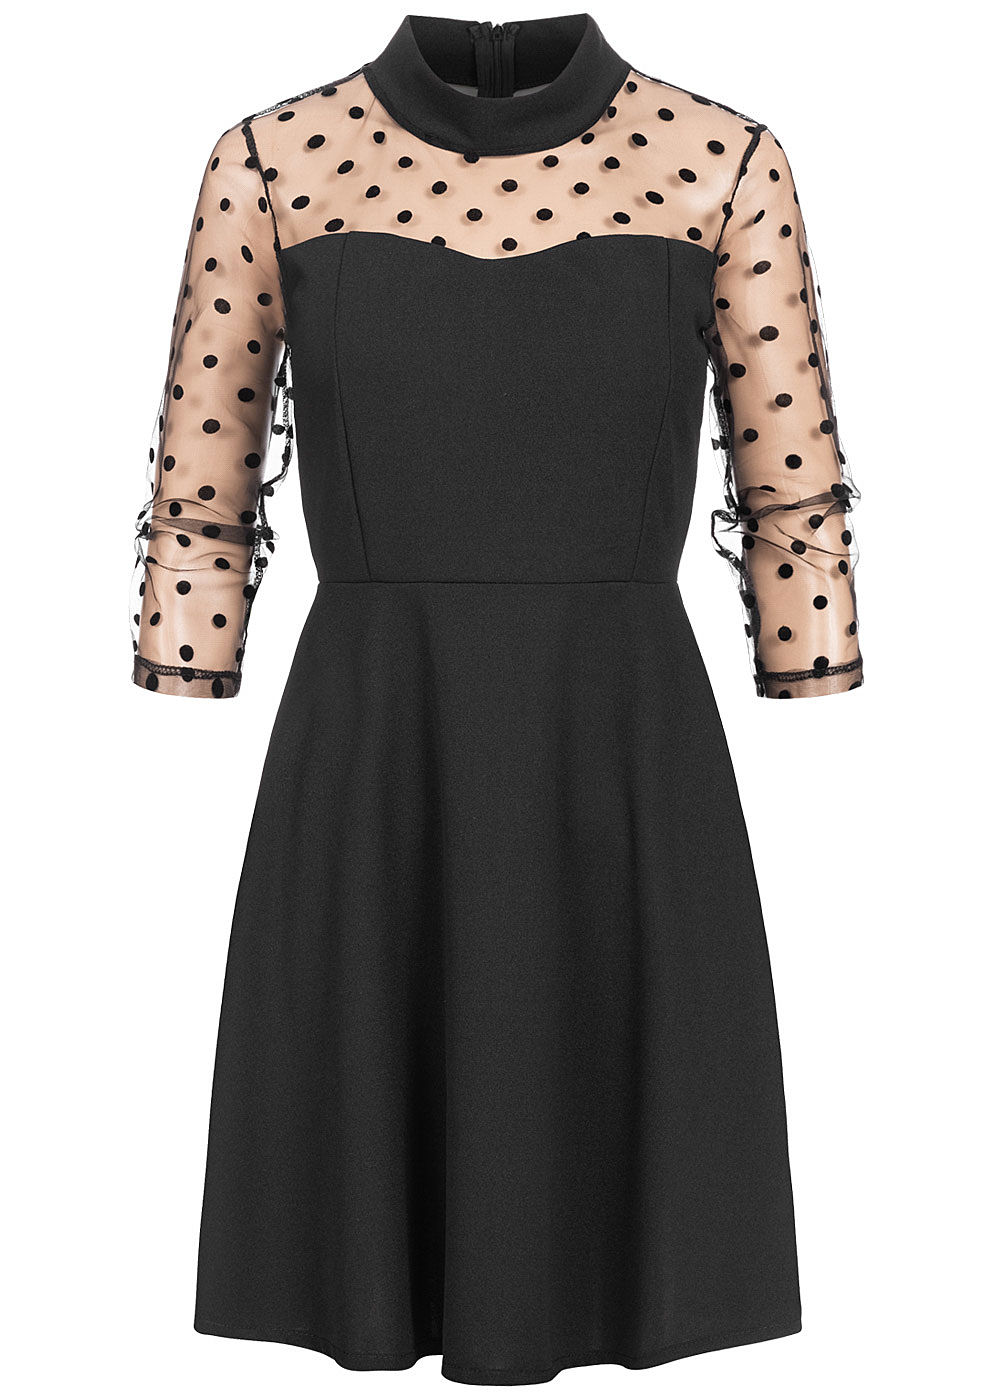 Styleboom Fashion Damen 3/4 Arm High-Neck Mini Kleid Mesh Punkte schwarz - Art.-Nr.: 20026239